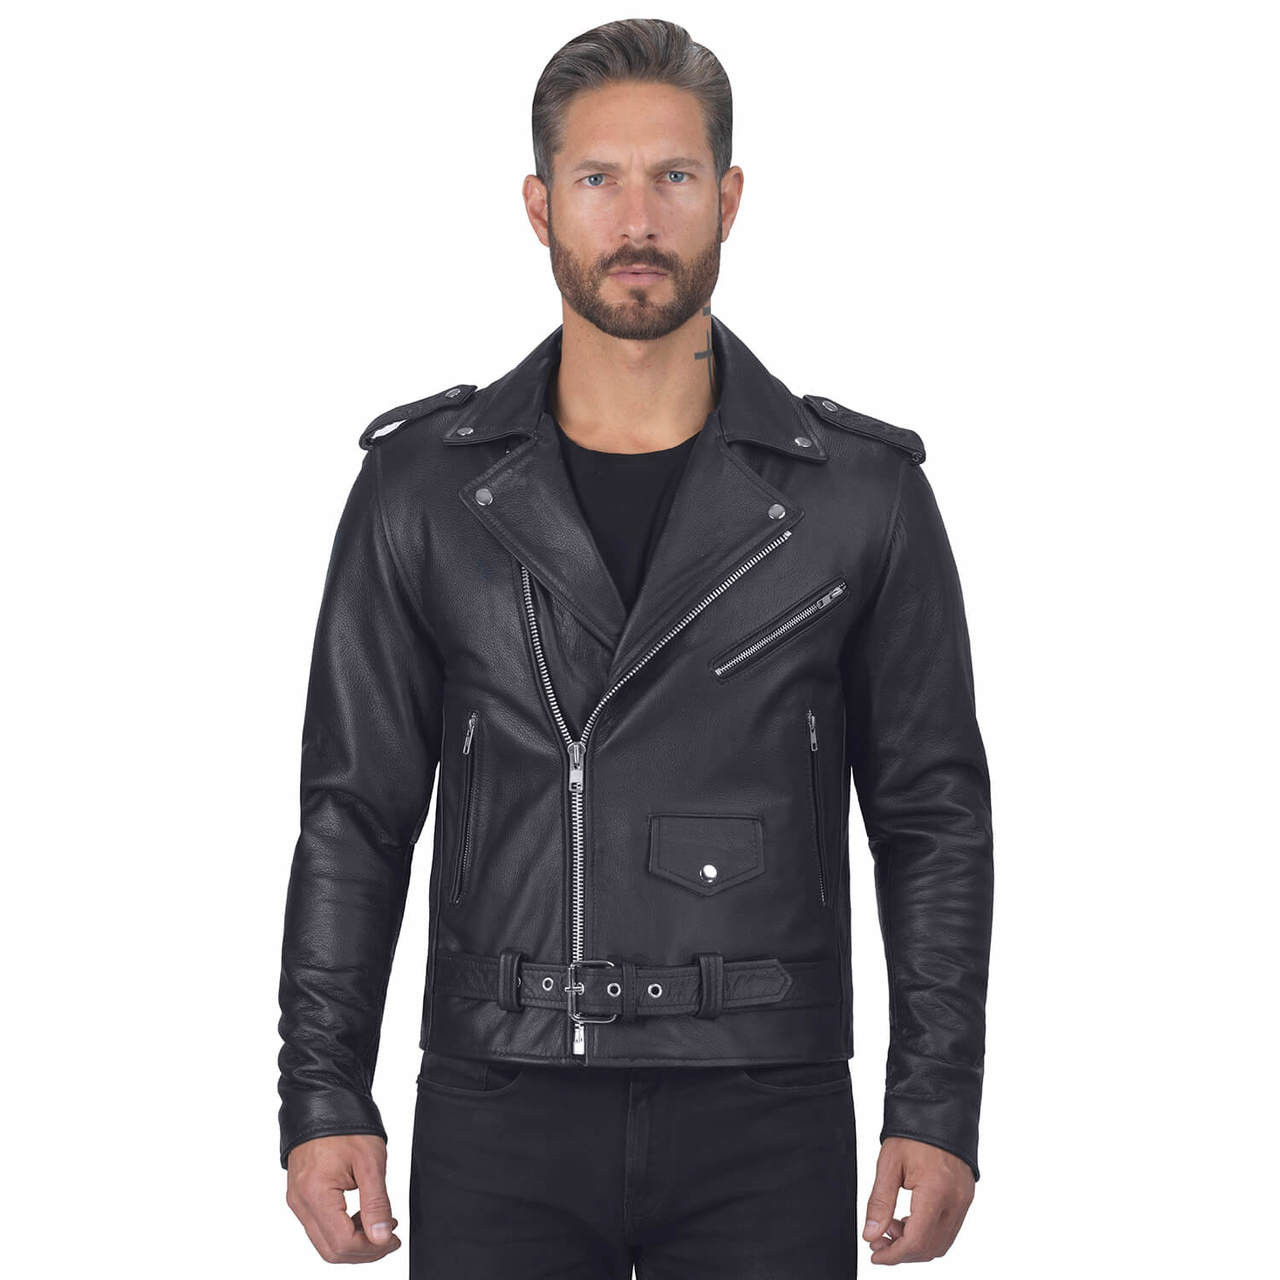 5X-Large Viking Cycle American Eagle Premium Grade Cowhide Leather Motorcycle Jacket for Men